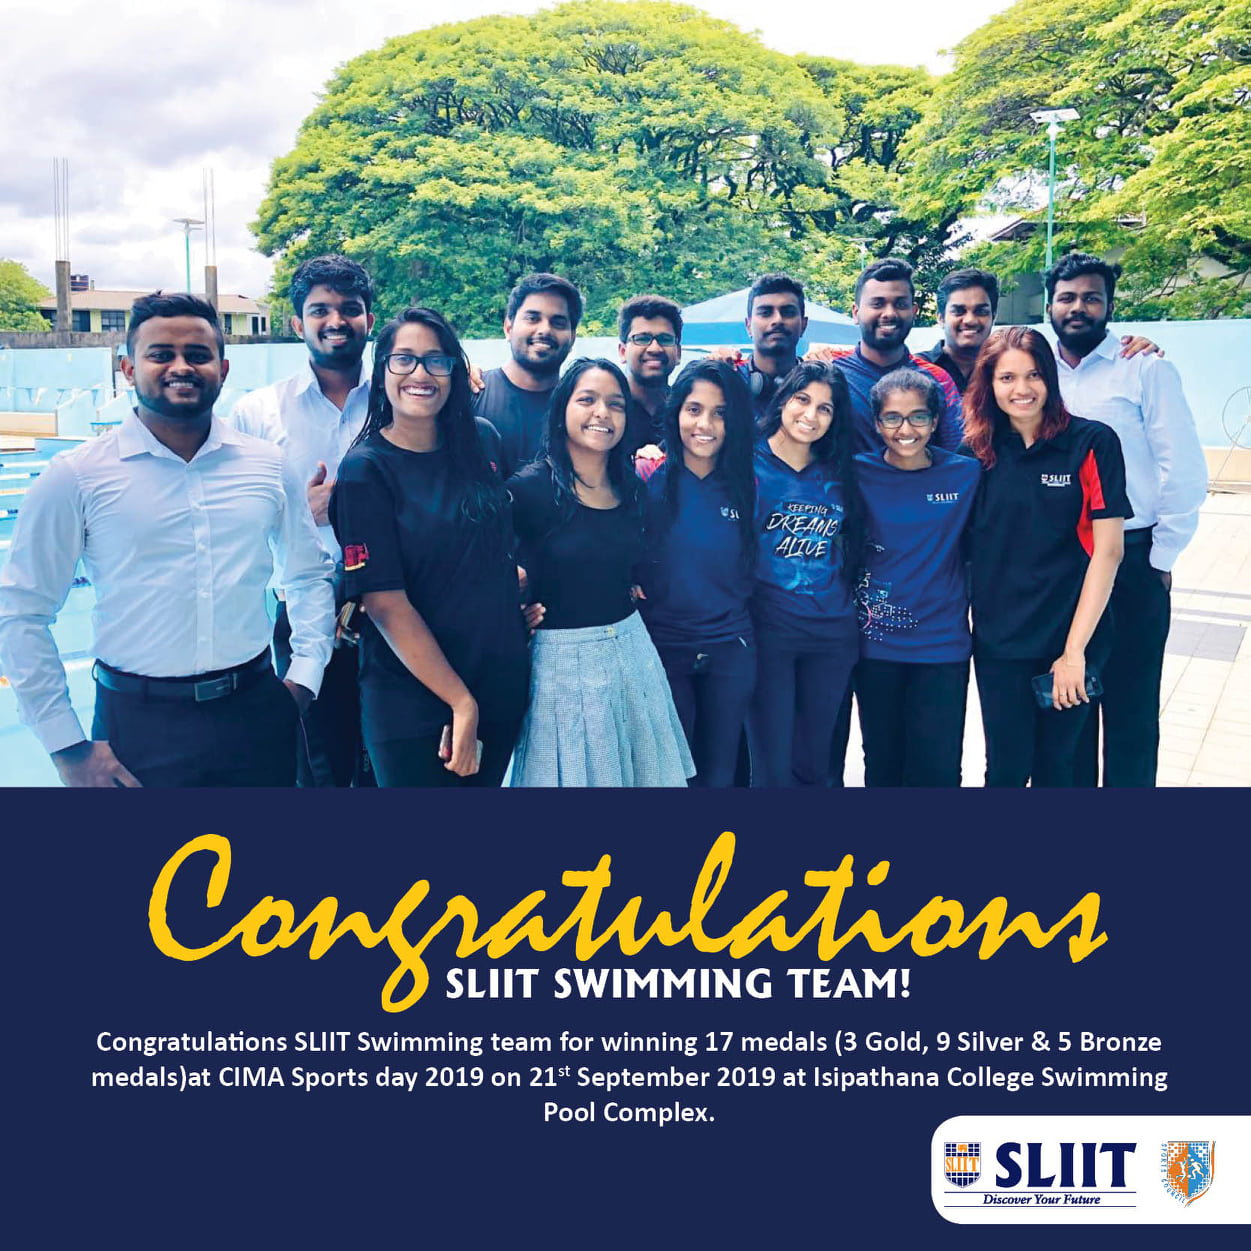 Congratulations-SLIIT-Swimming-team-for-winning-17-medals-at-CIMA-Sports-day-2019